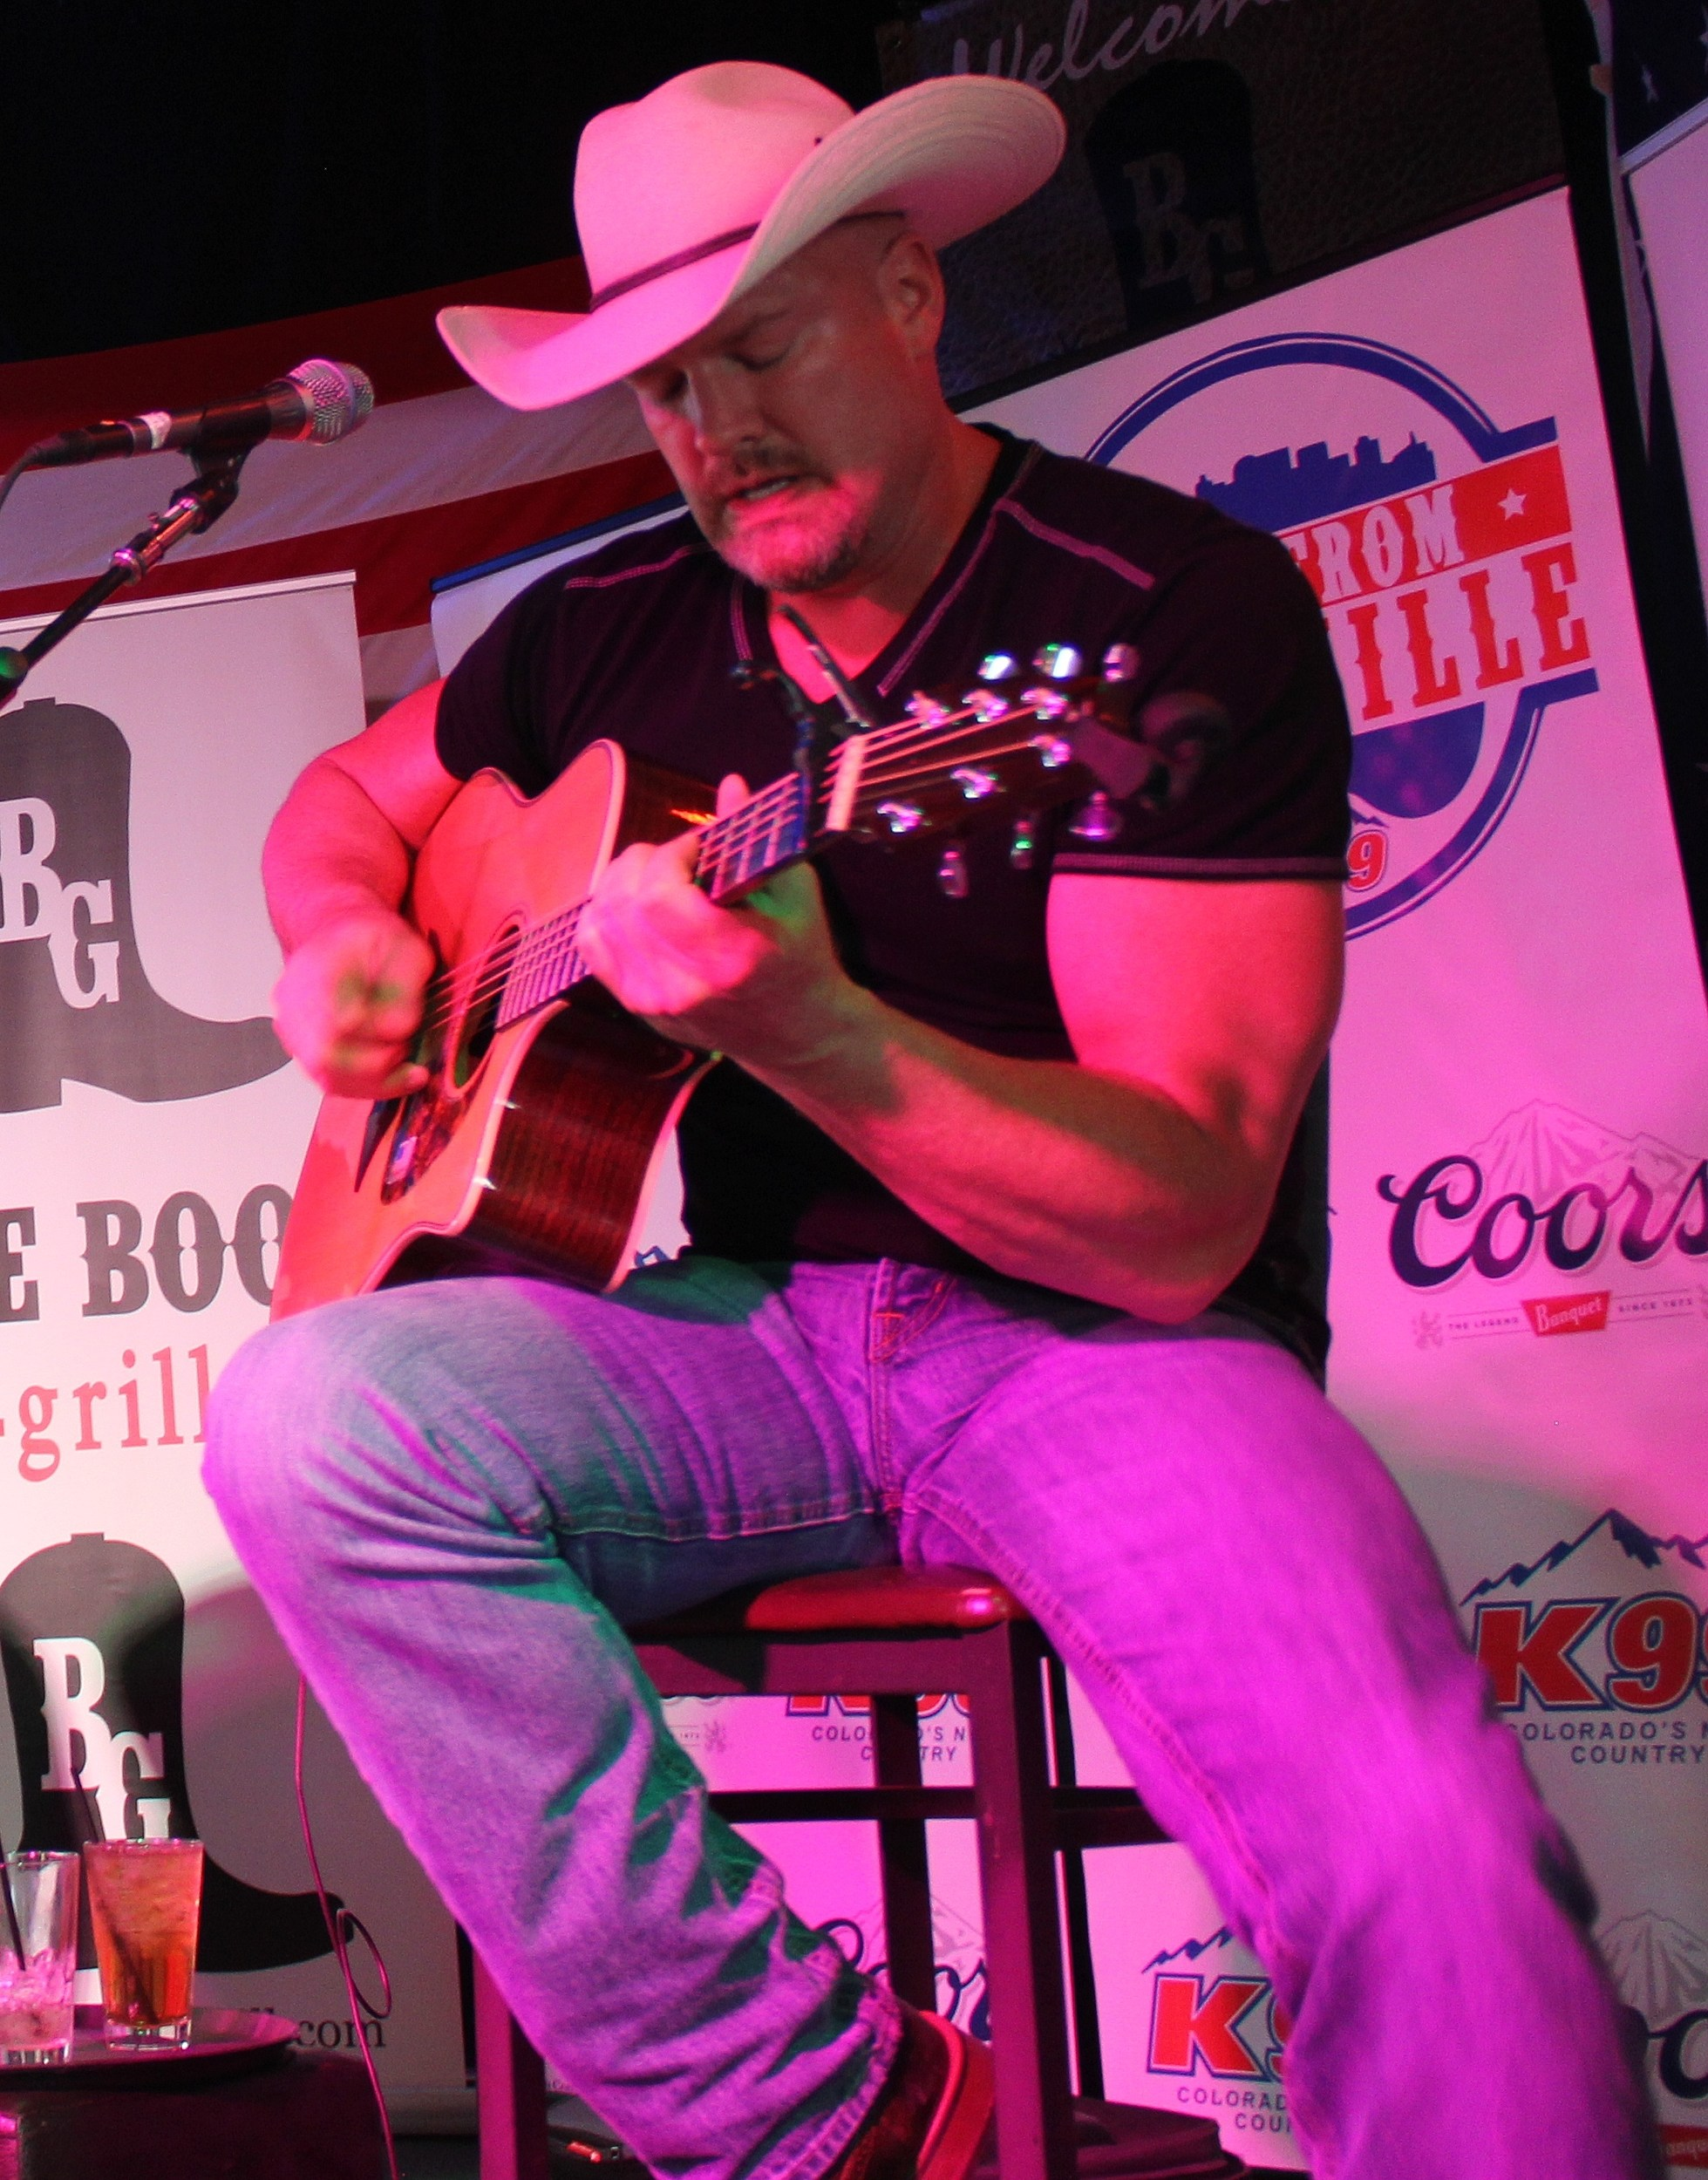 Trent Tomlinson at the Boot Grill for New From Nashville